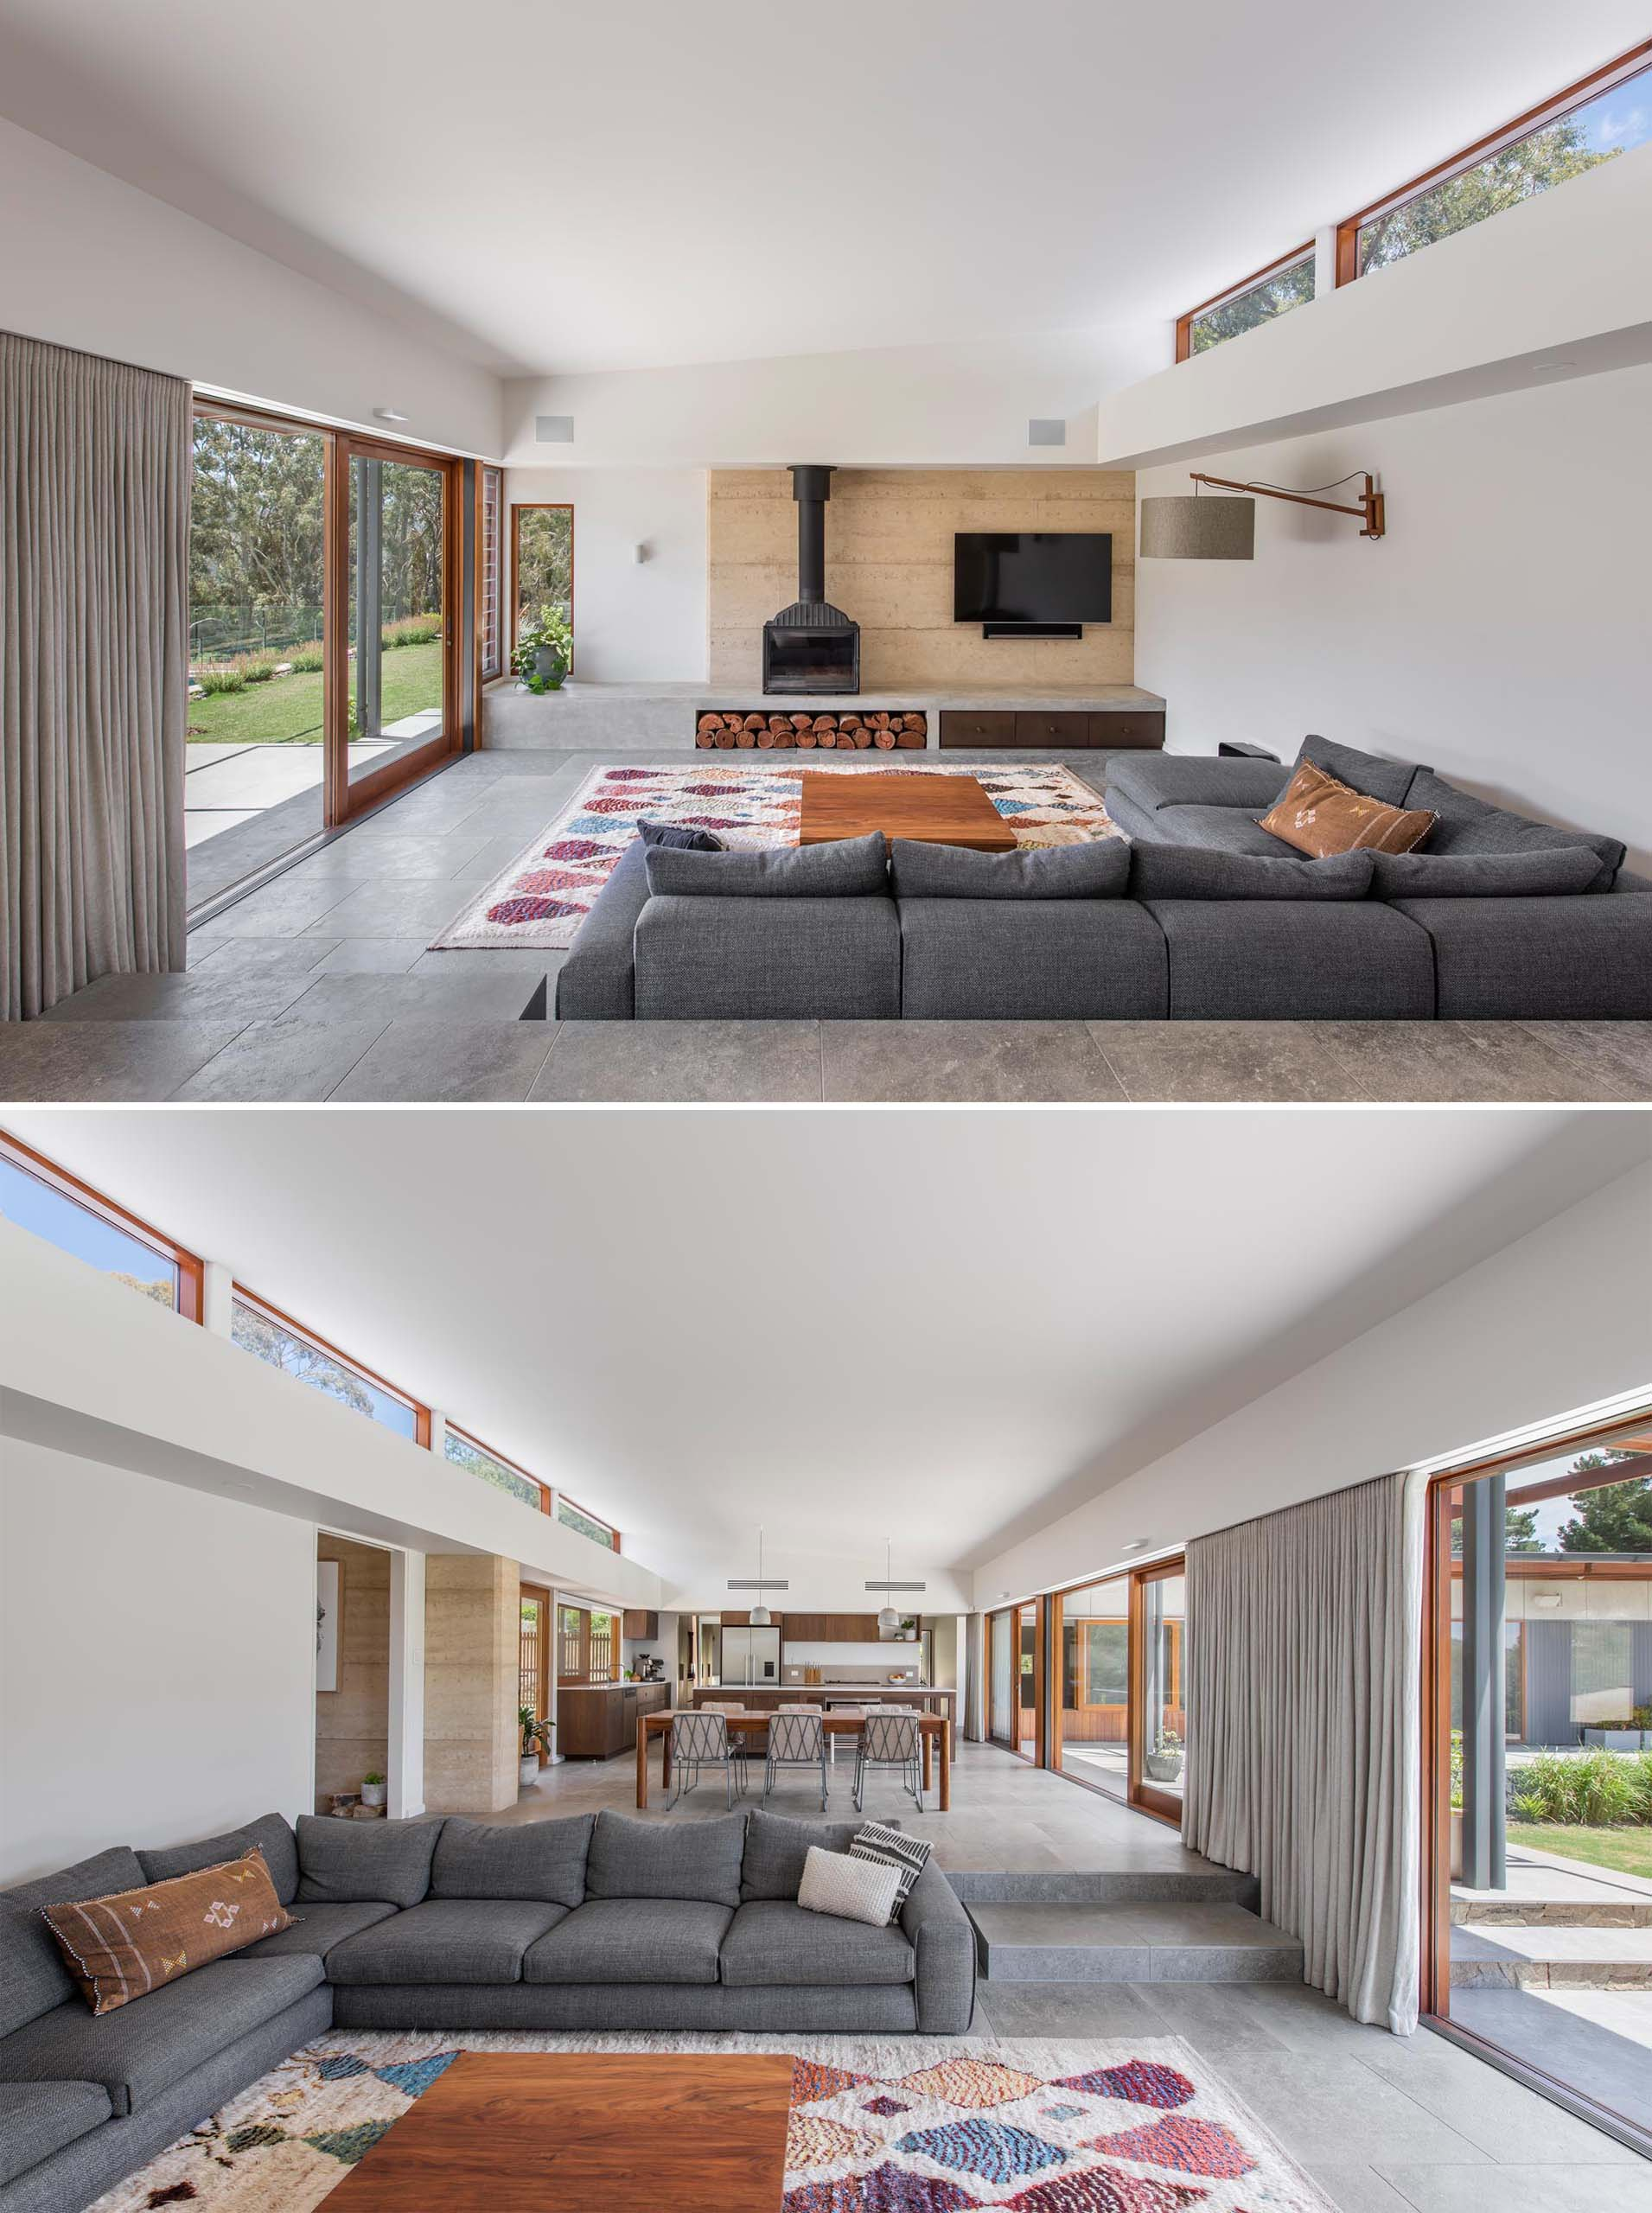 A modern interior with an open plan kitchen, dining and living area, which has an immediate relationship with the outdoor entertaining space, and can be accessed through the wood framed sliding glass doors.